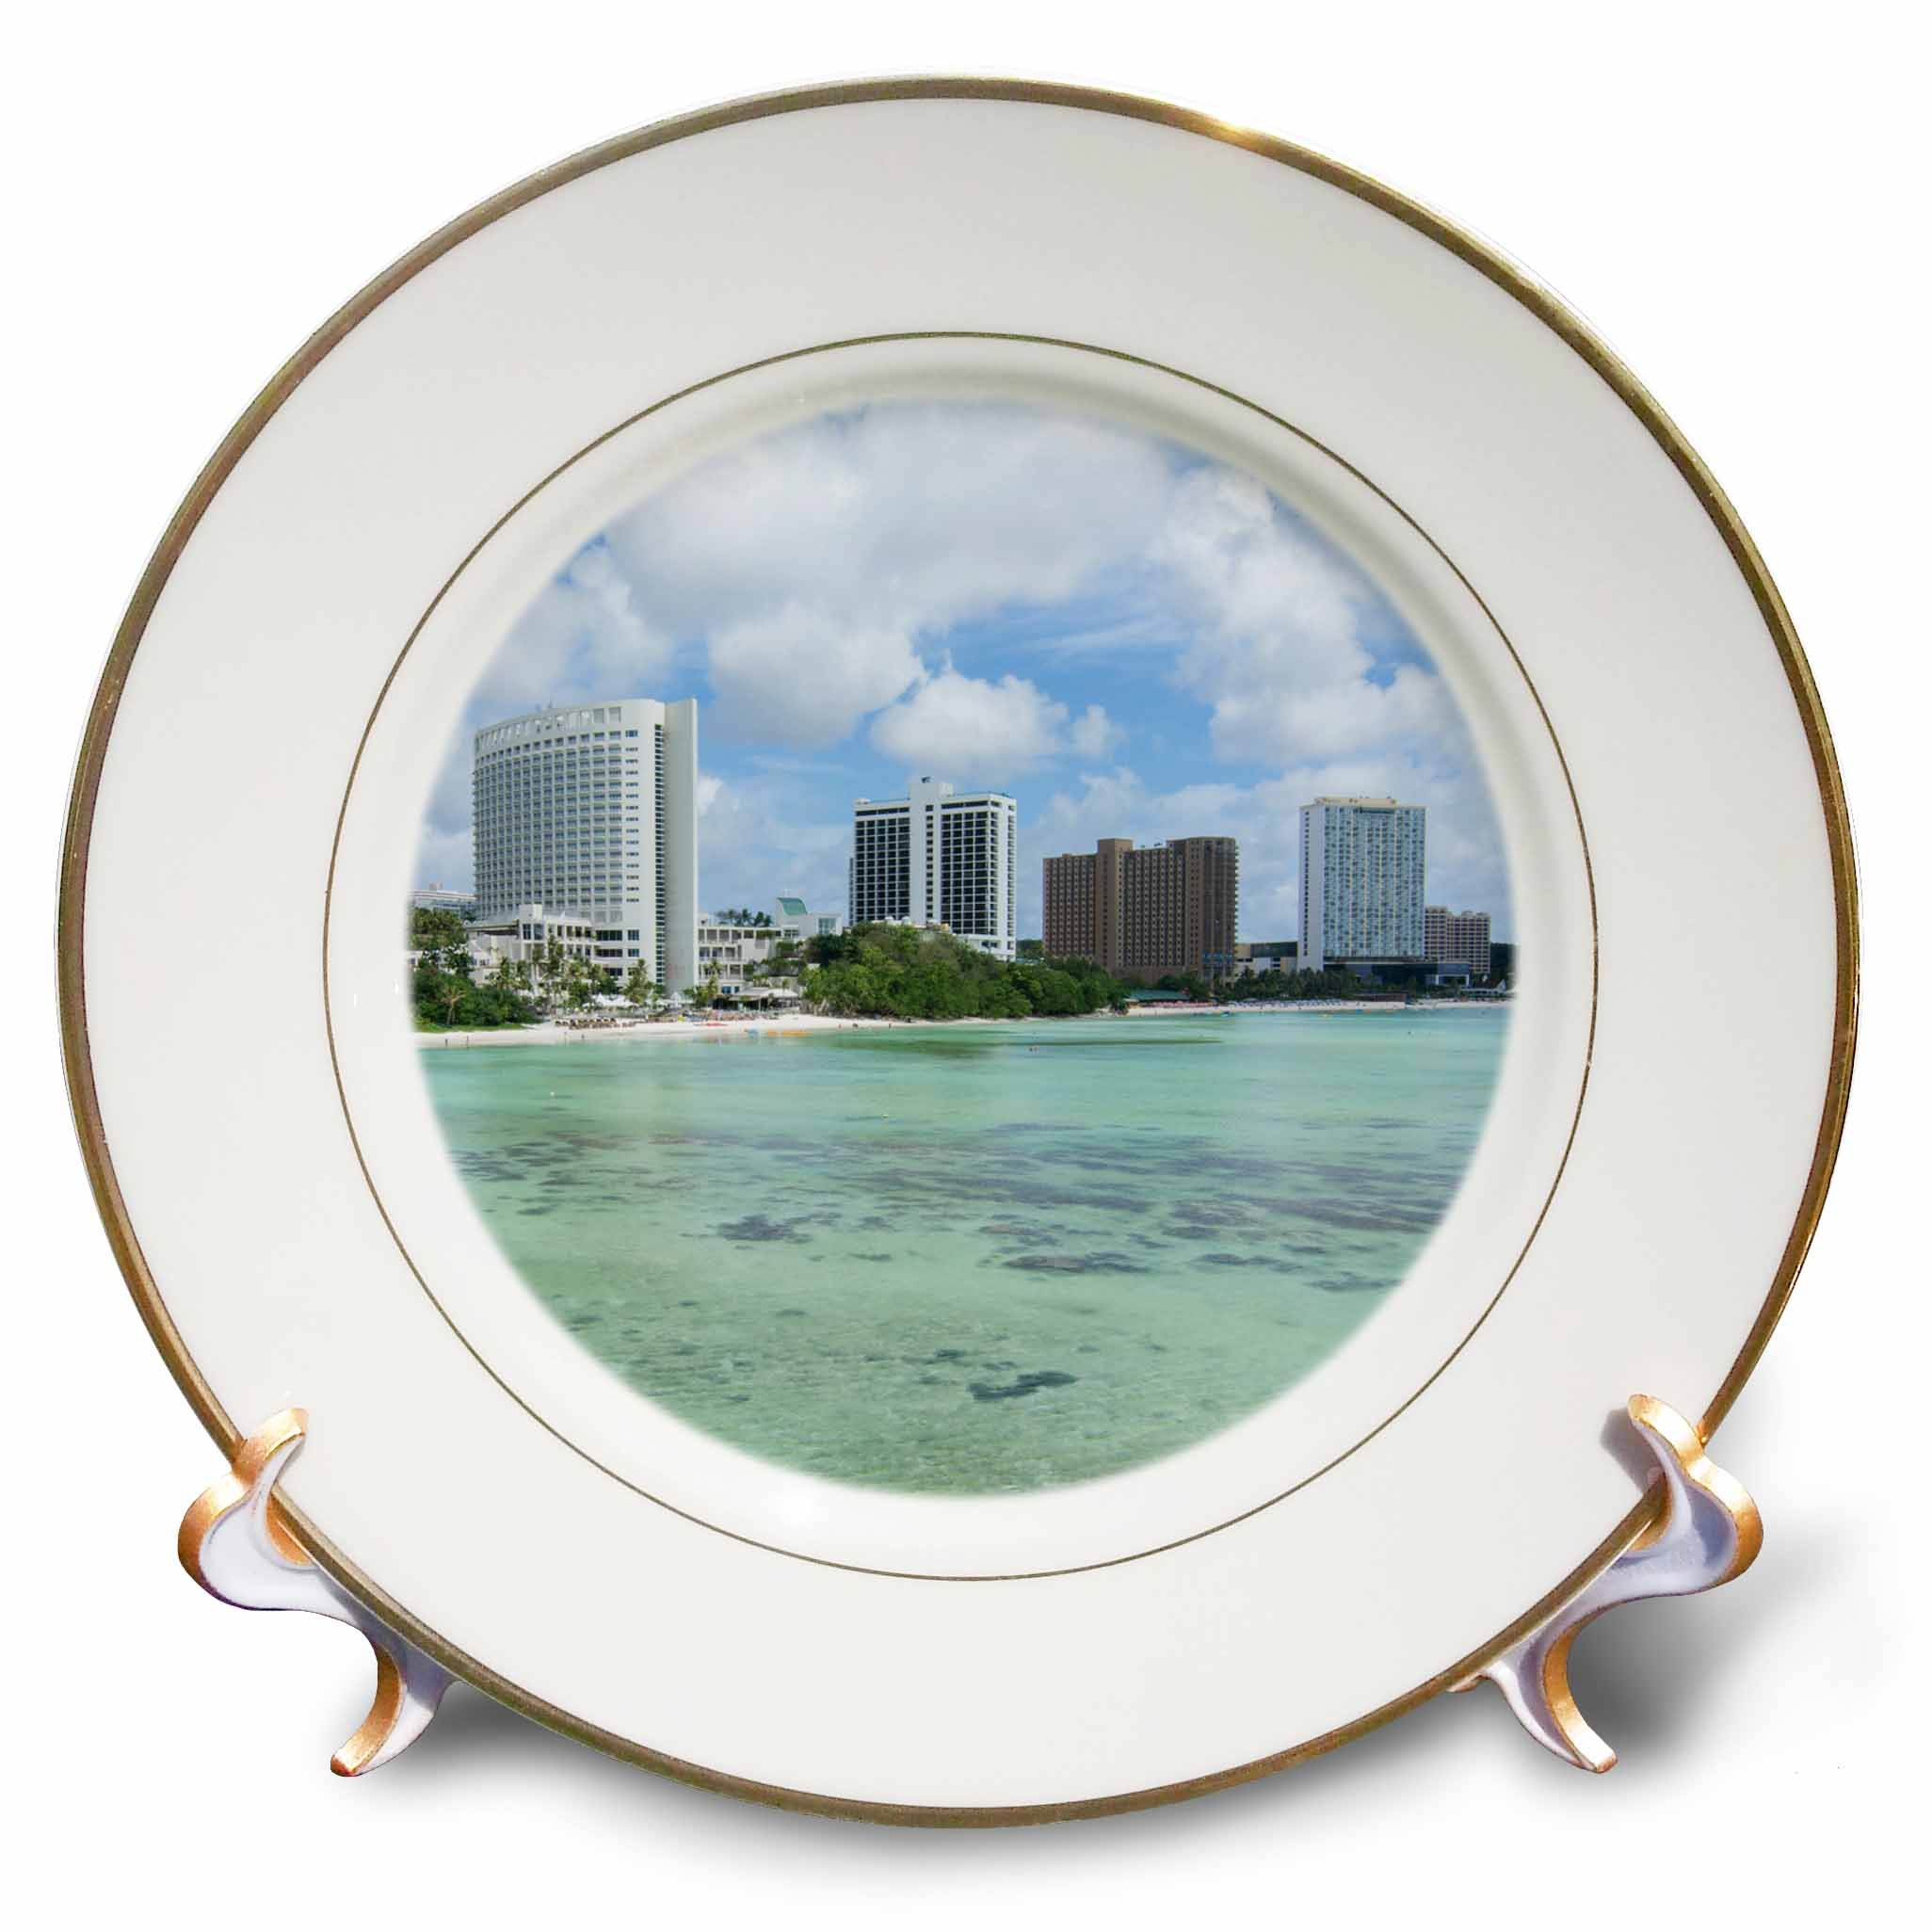 3dRose Danita Delimont - Cities - Guam Territory. Hotels line beach with clear tropical waters. - 8 inch Porcelain Plate (cp_278126_1)